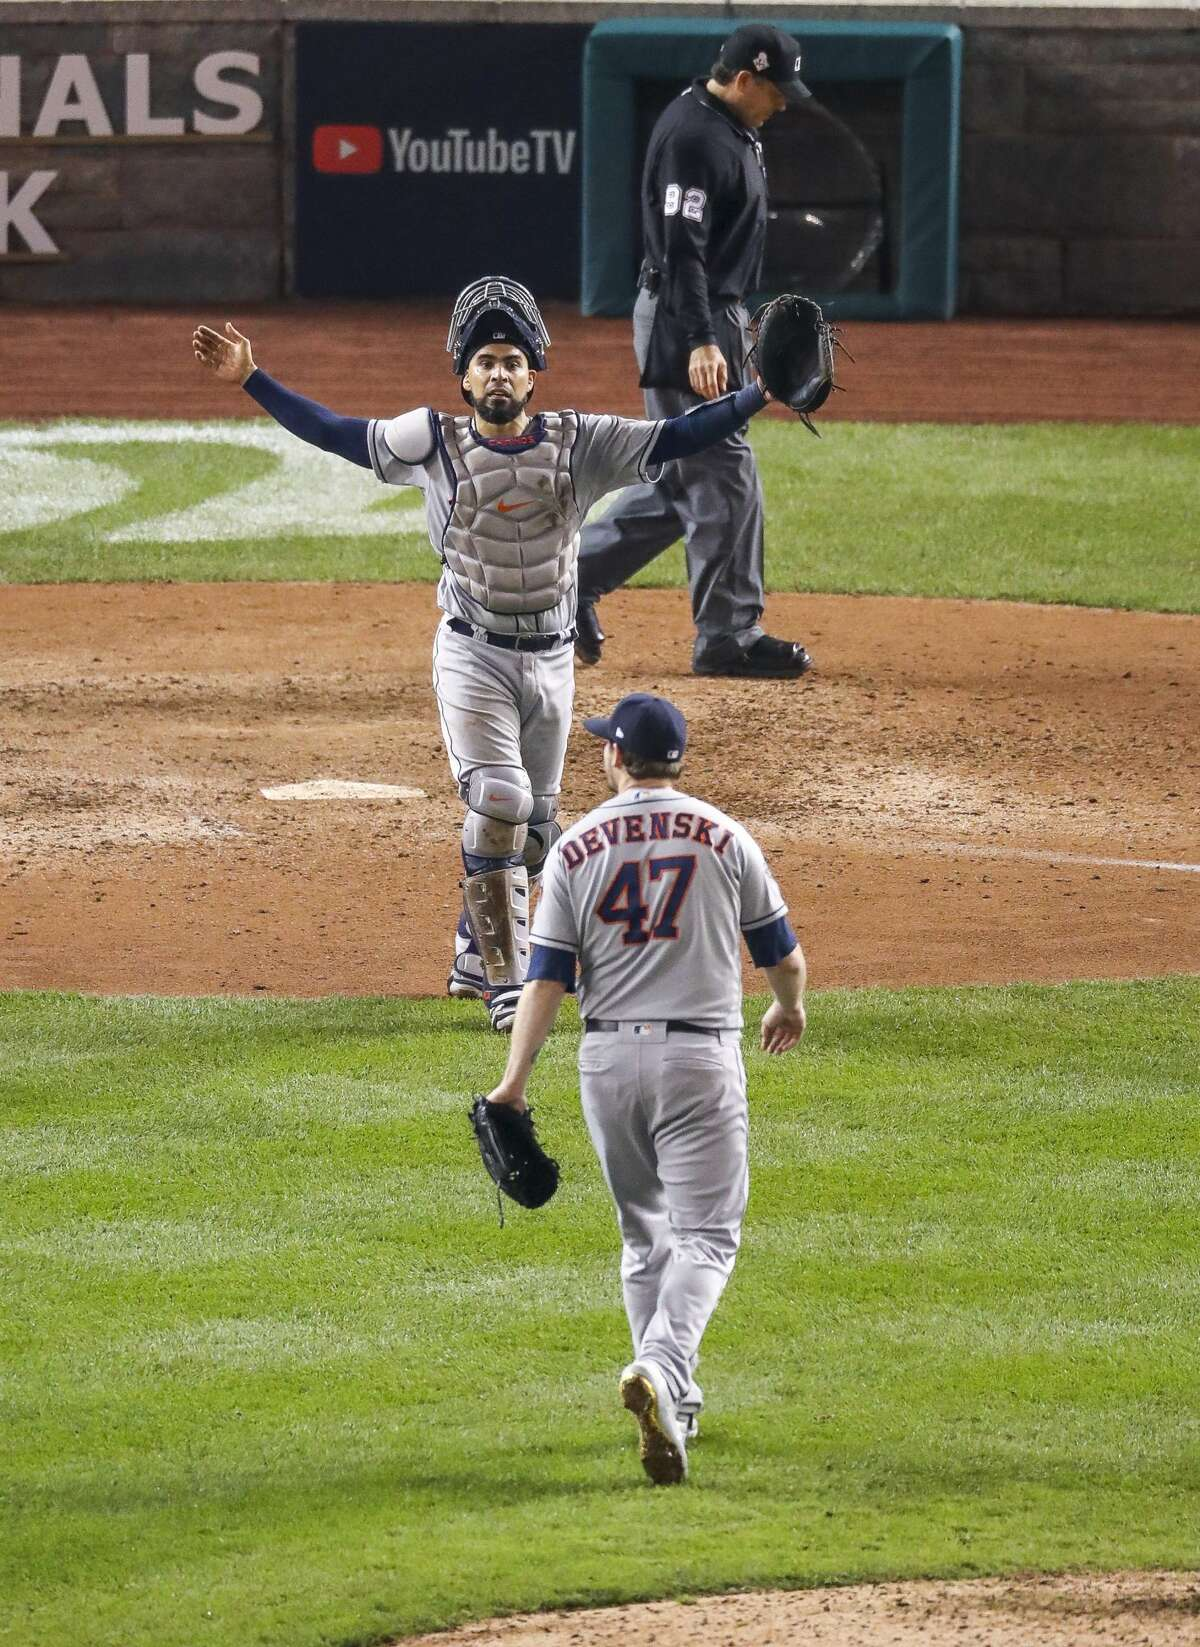 Houston Astros catcher Robinson Chirinos (28) celebrates with Houston Astros relief pitcher Chris Devenski (47) at the end of the ninth inning of Game 4 of the World Series at Nationals Park in Washington, D.C. on Saturday, Oct. 26, 2019.